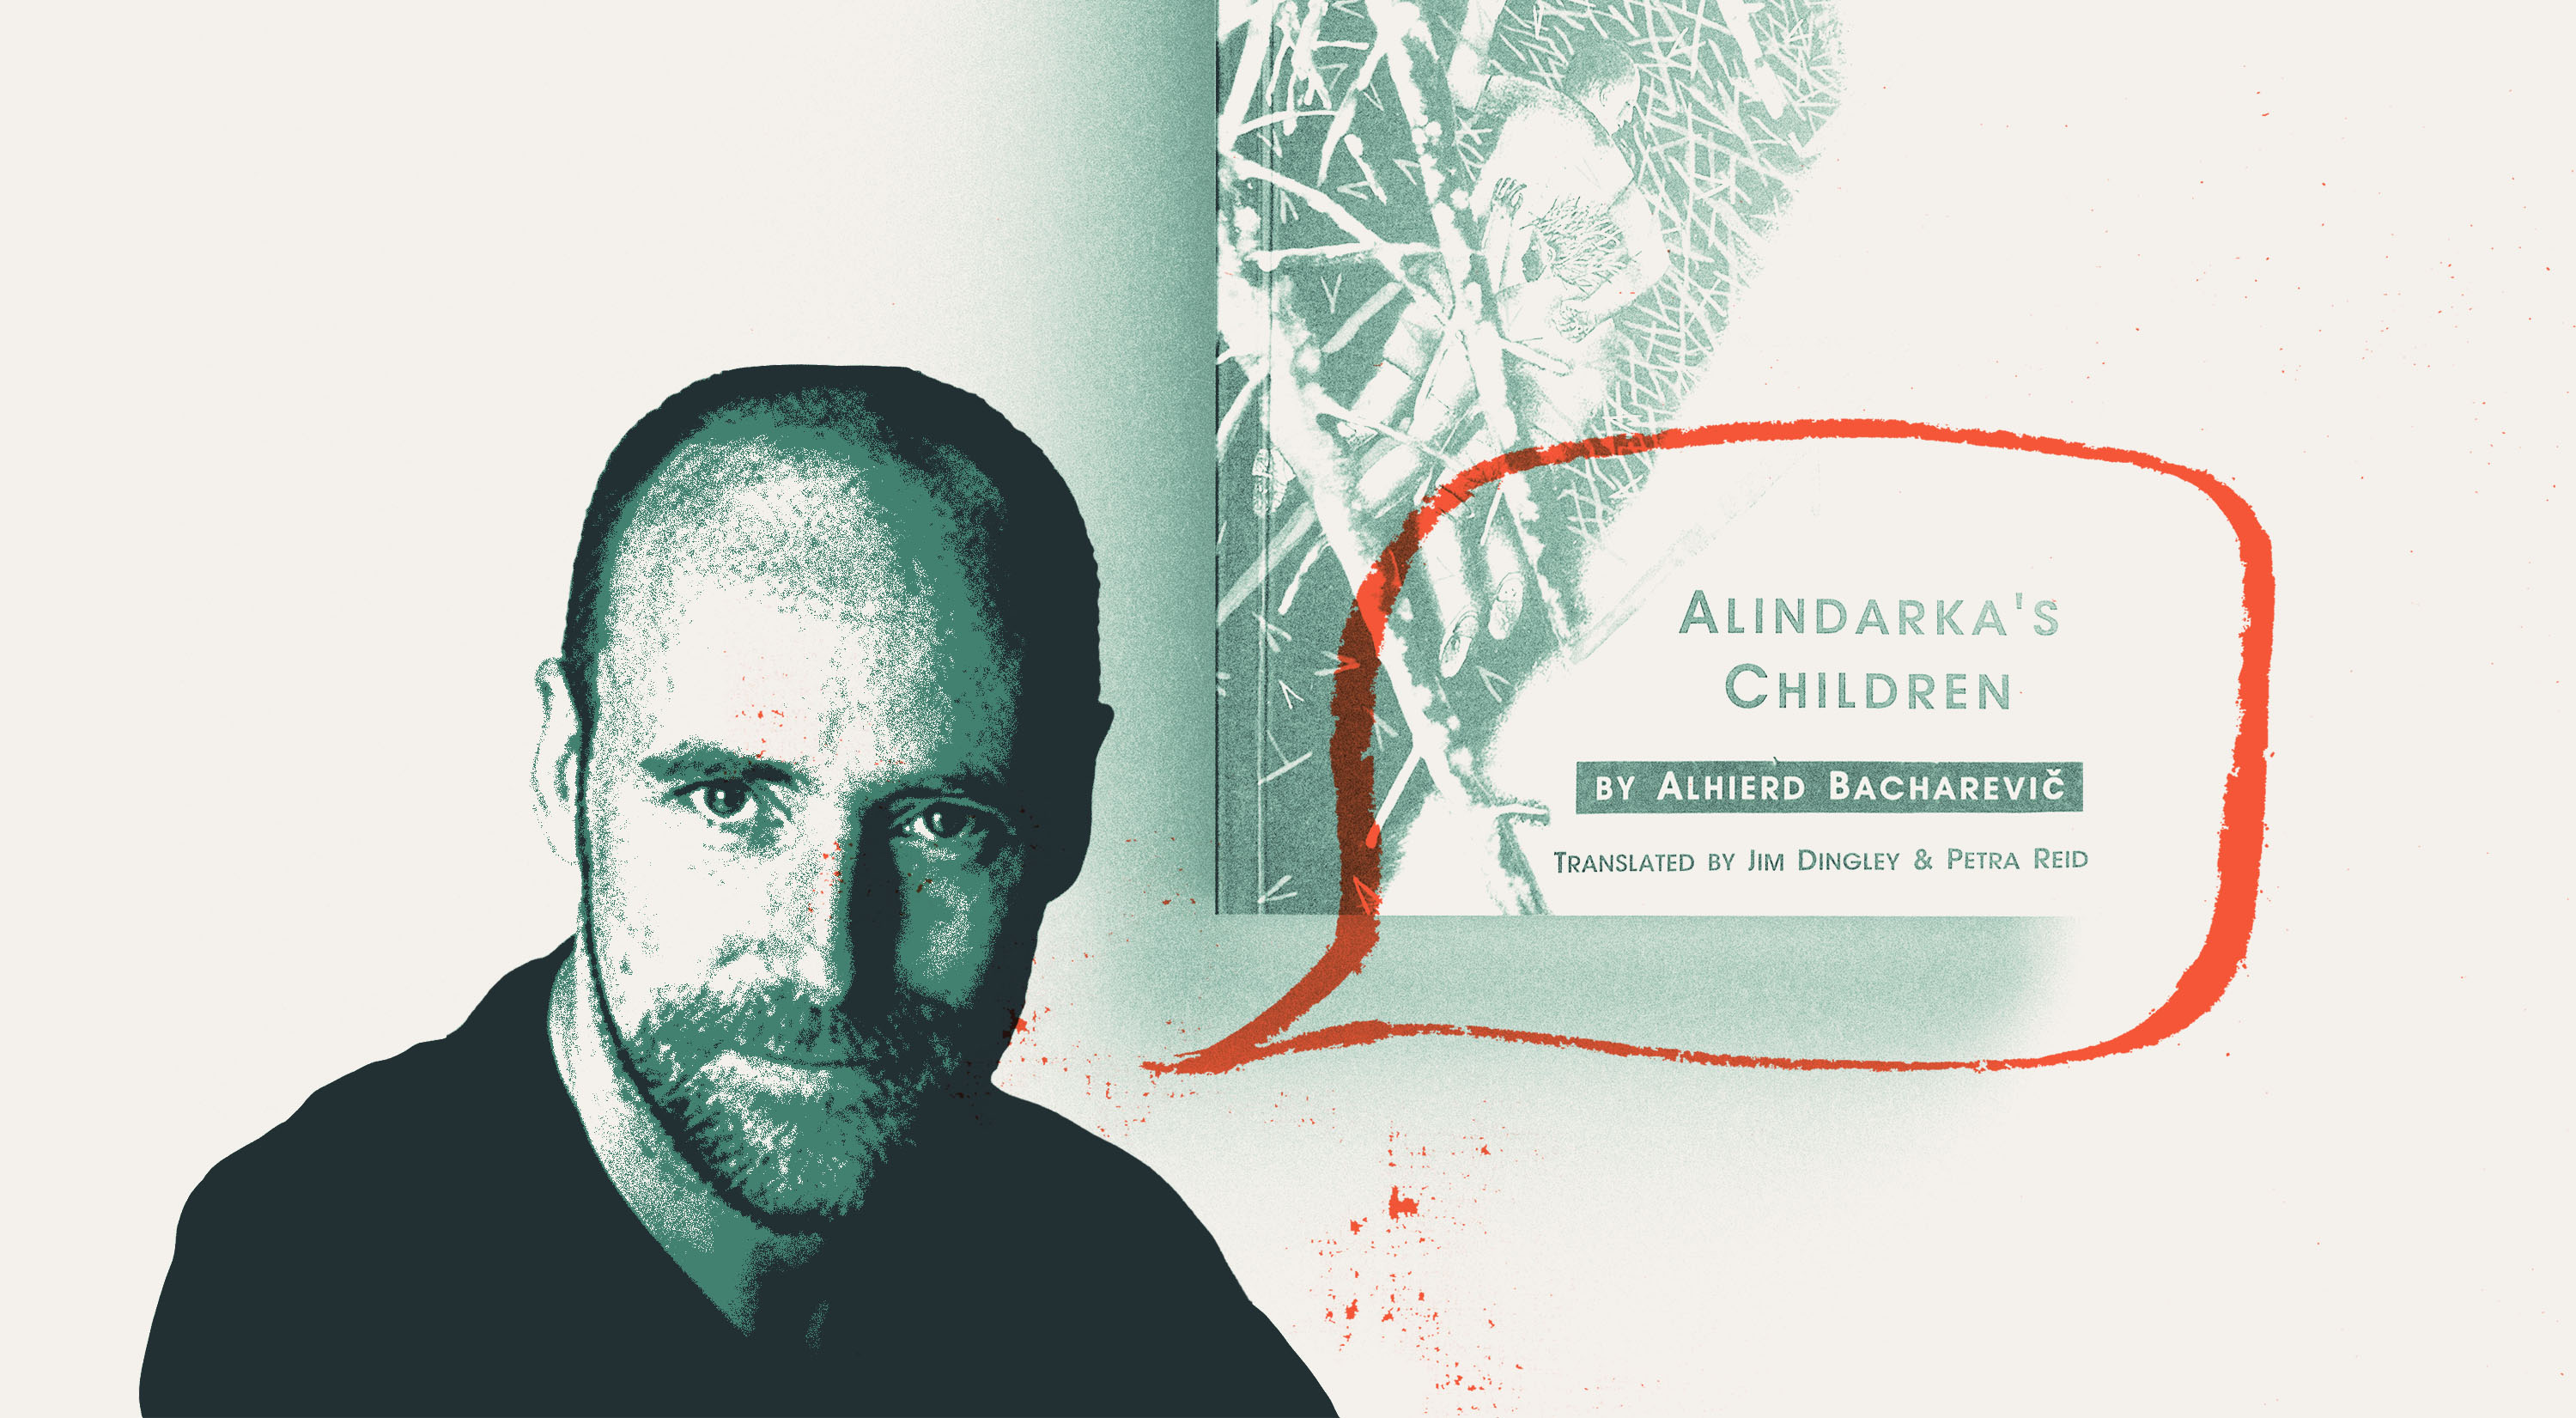 portrait of Hamish Macdonald with orange speech bubble graphic and a background of book, Alindarka's Children